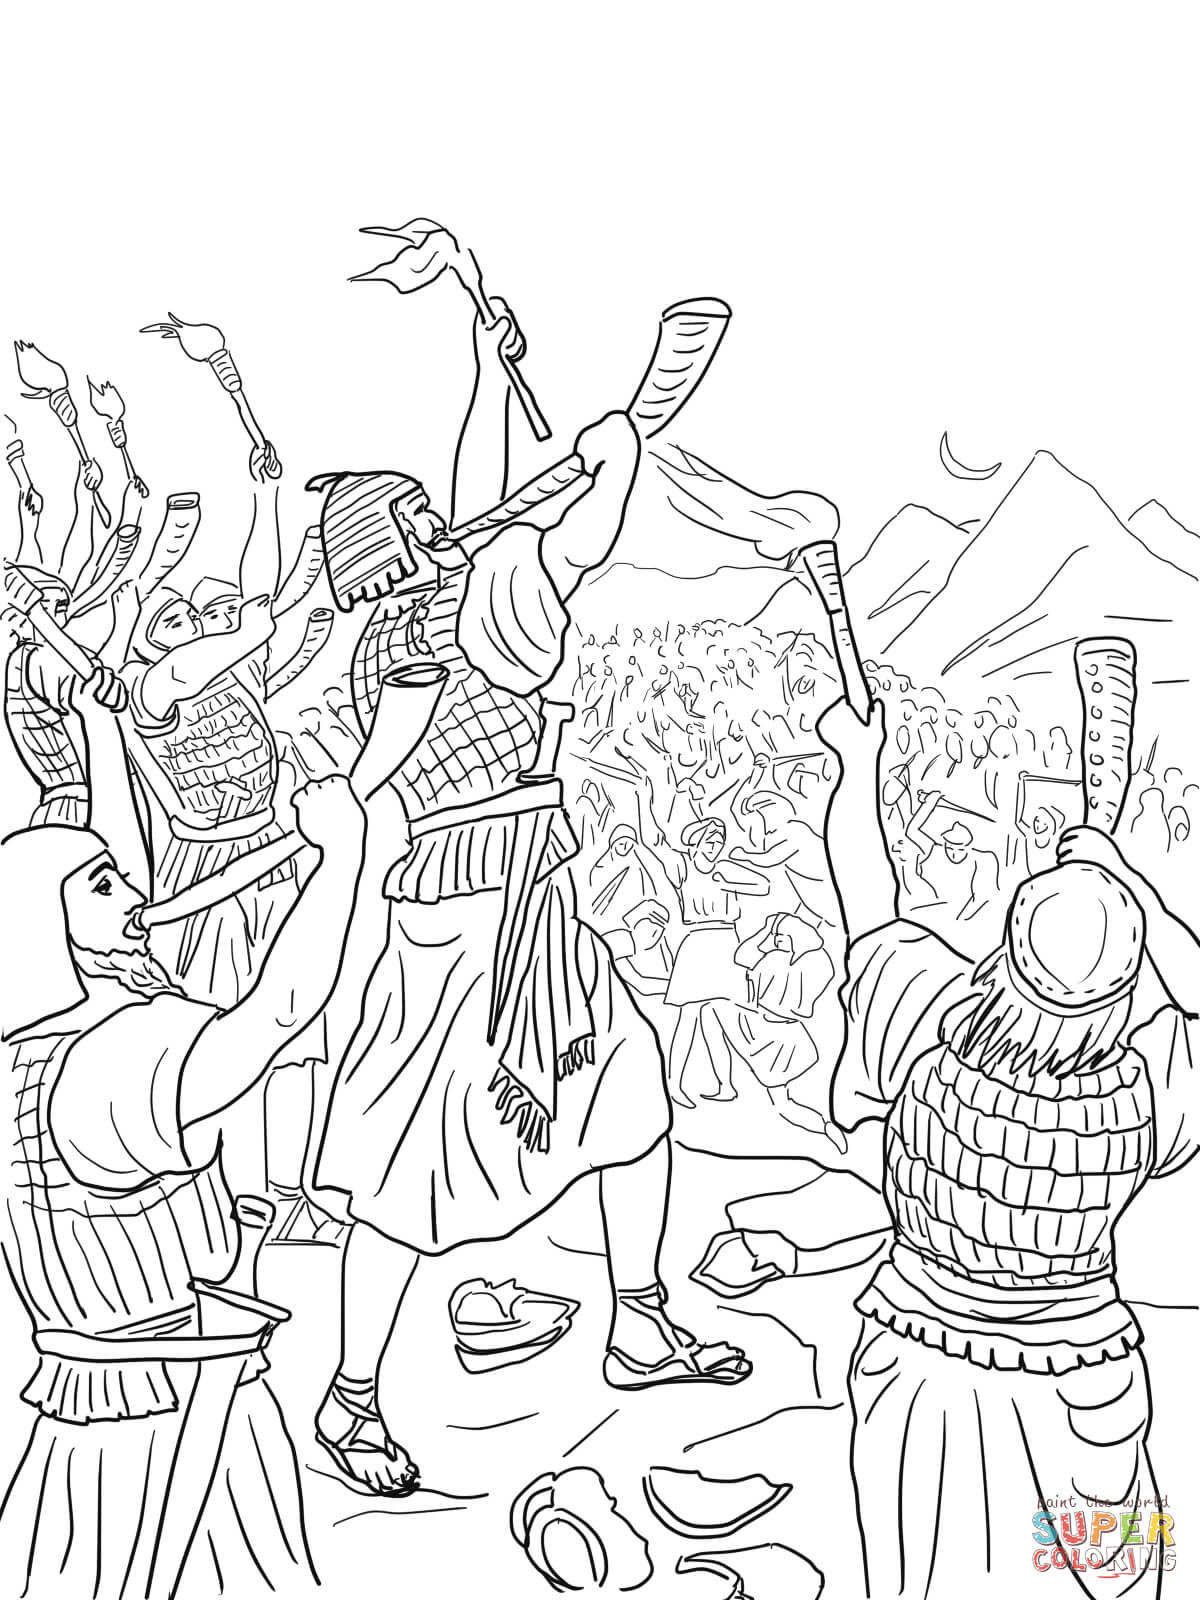 gideon coloring pages gideon coloring page free coloring home pages gideon coloring 1 1